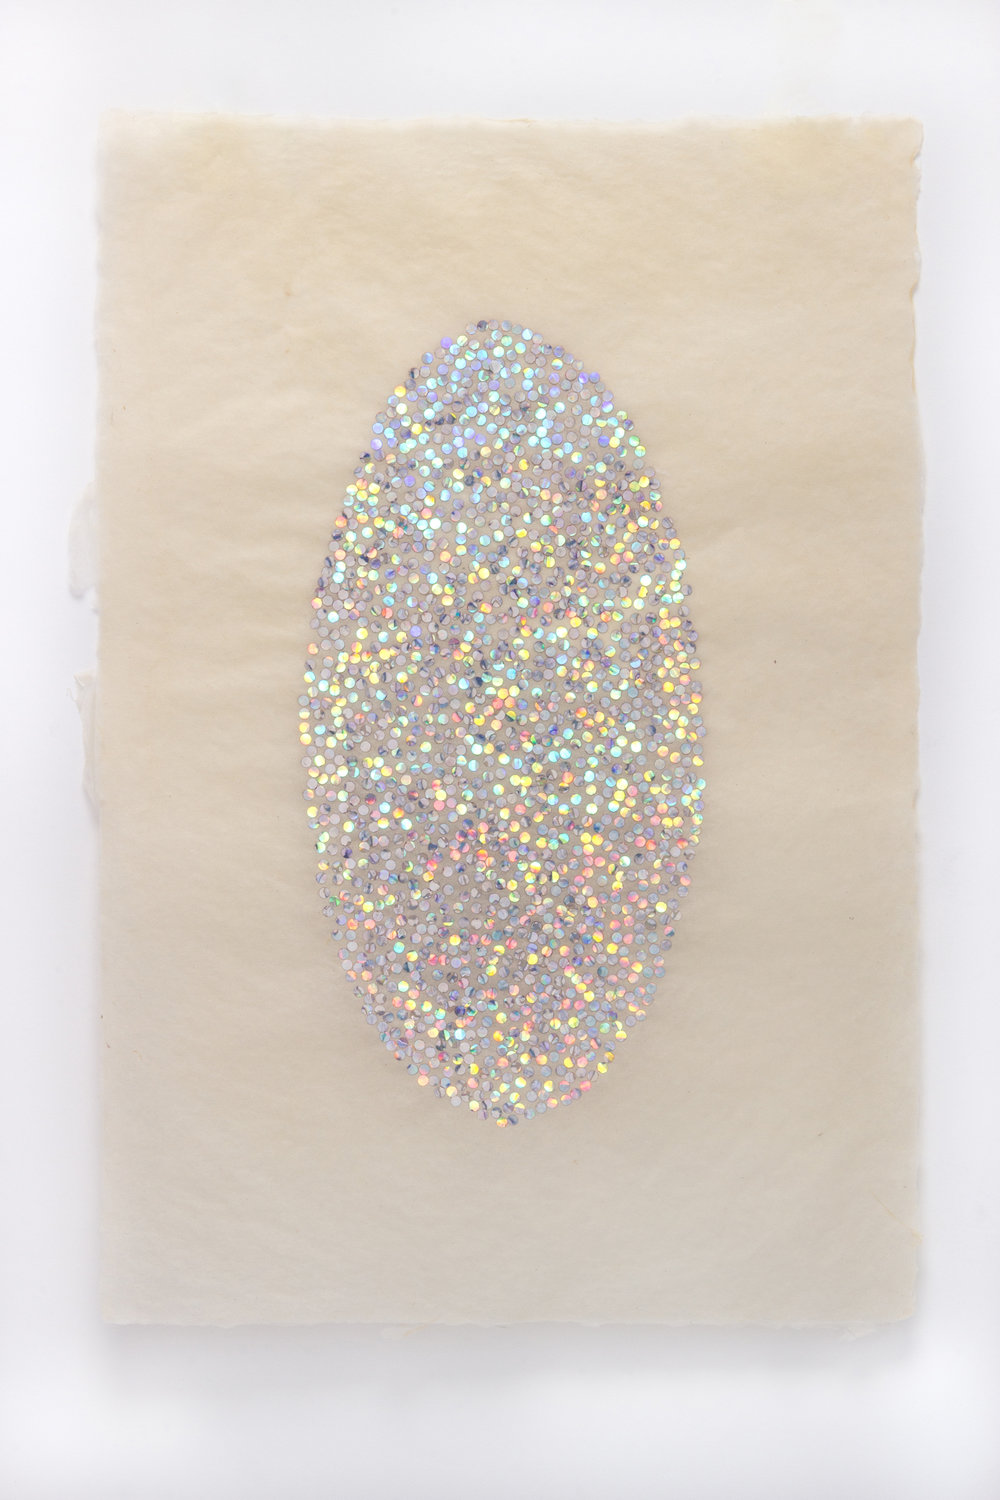 "Leigh Suggs , Untitled, 2015                                      Hand-punched hologram foil on abaca, 11"" x 17"" Photo by Taylor Dabney, Collection of Fidelity Investments"